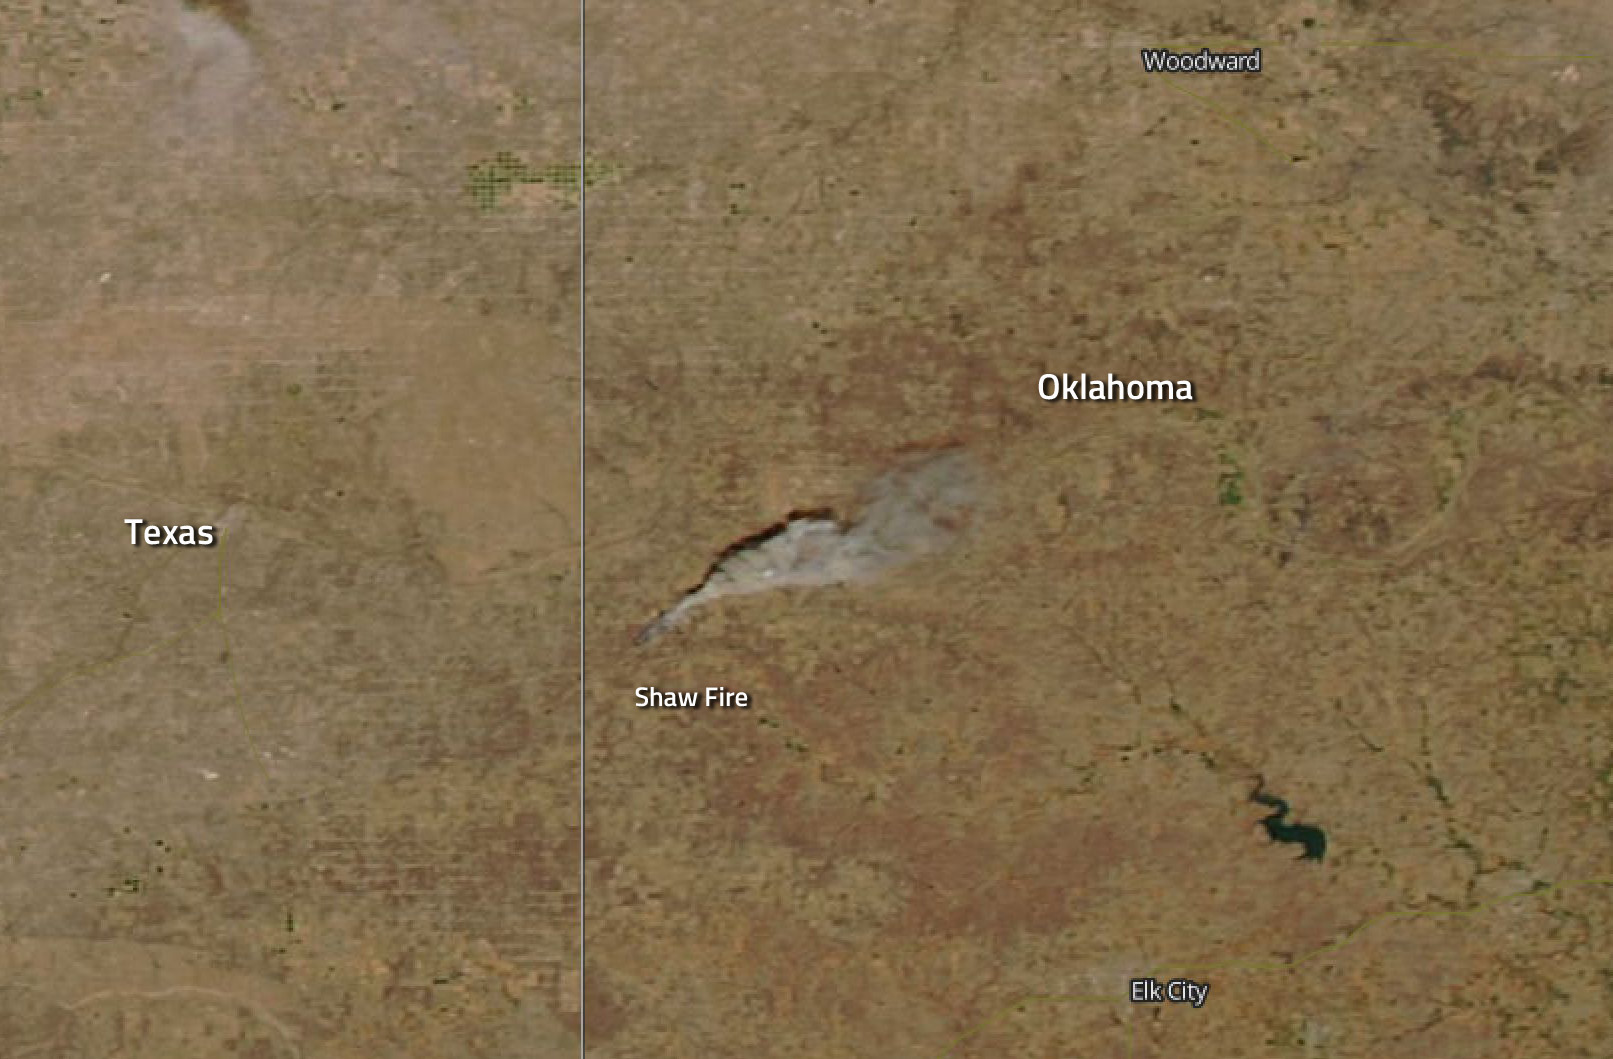 Oklahoma Sees Spate of Fires Including the Shaw Fire | NASA